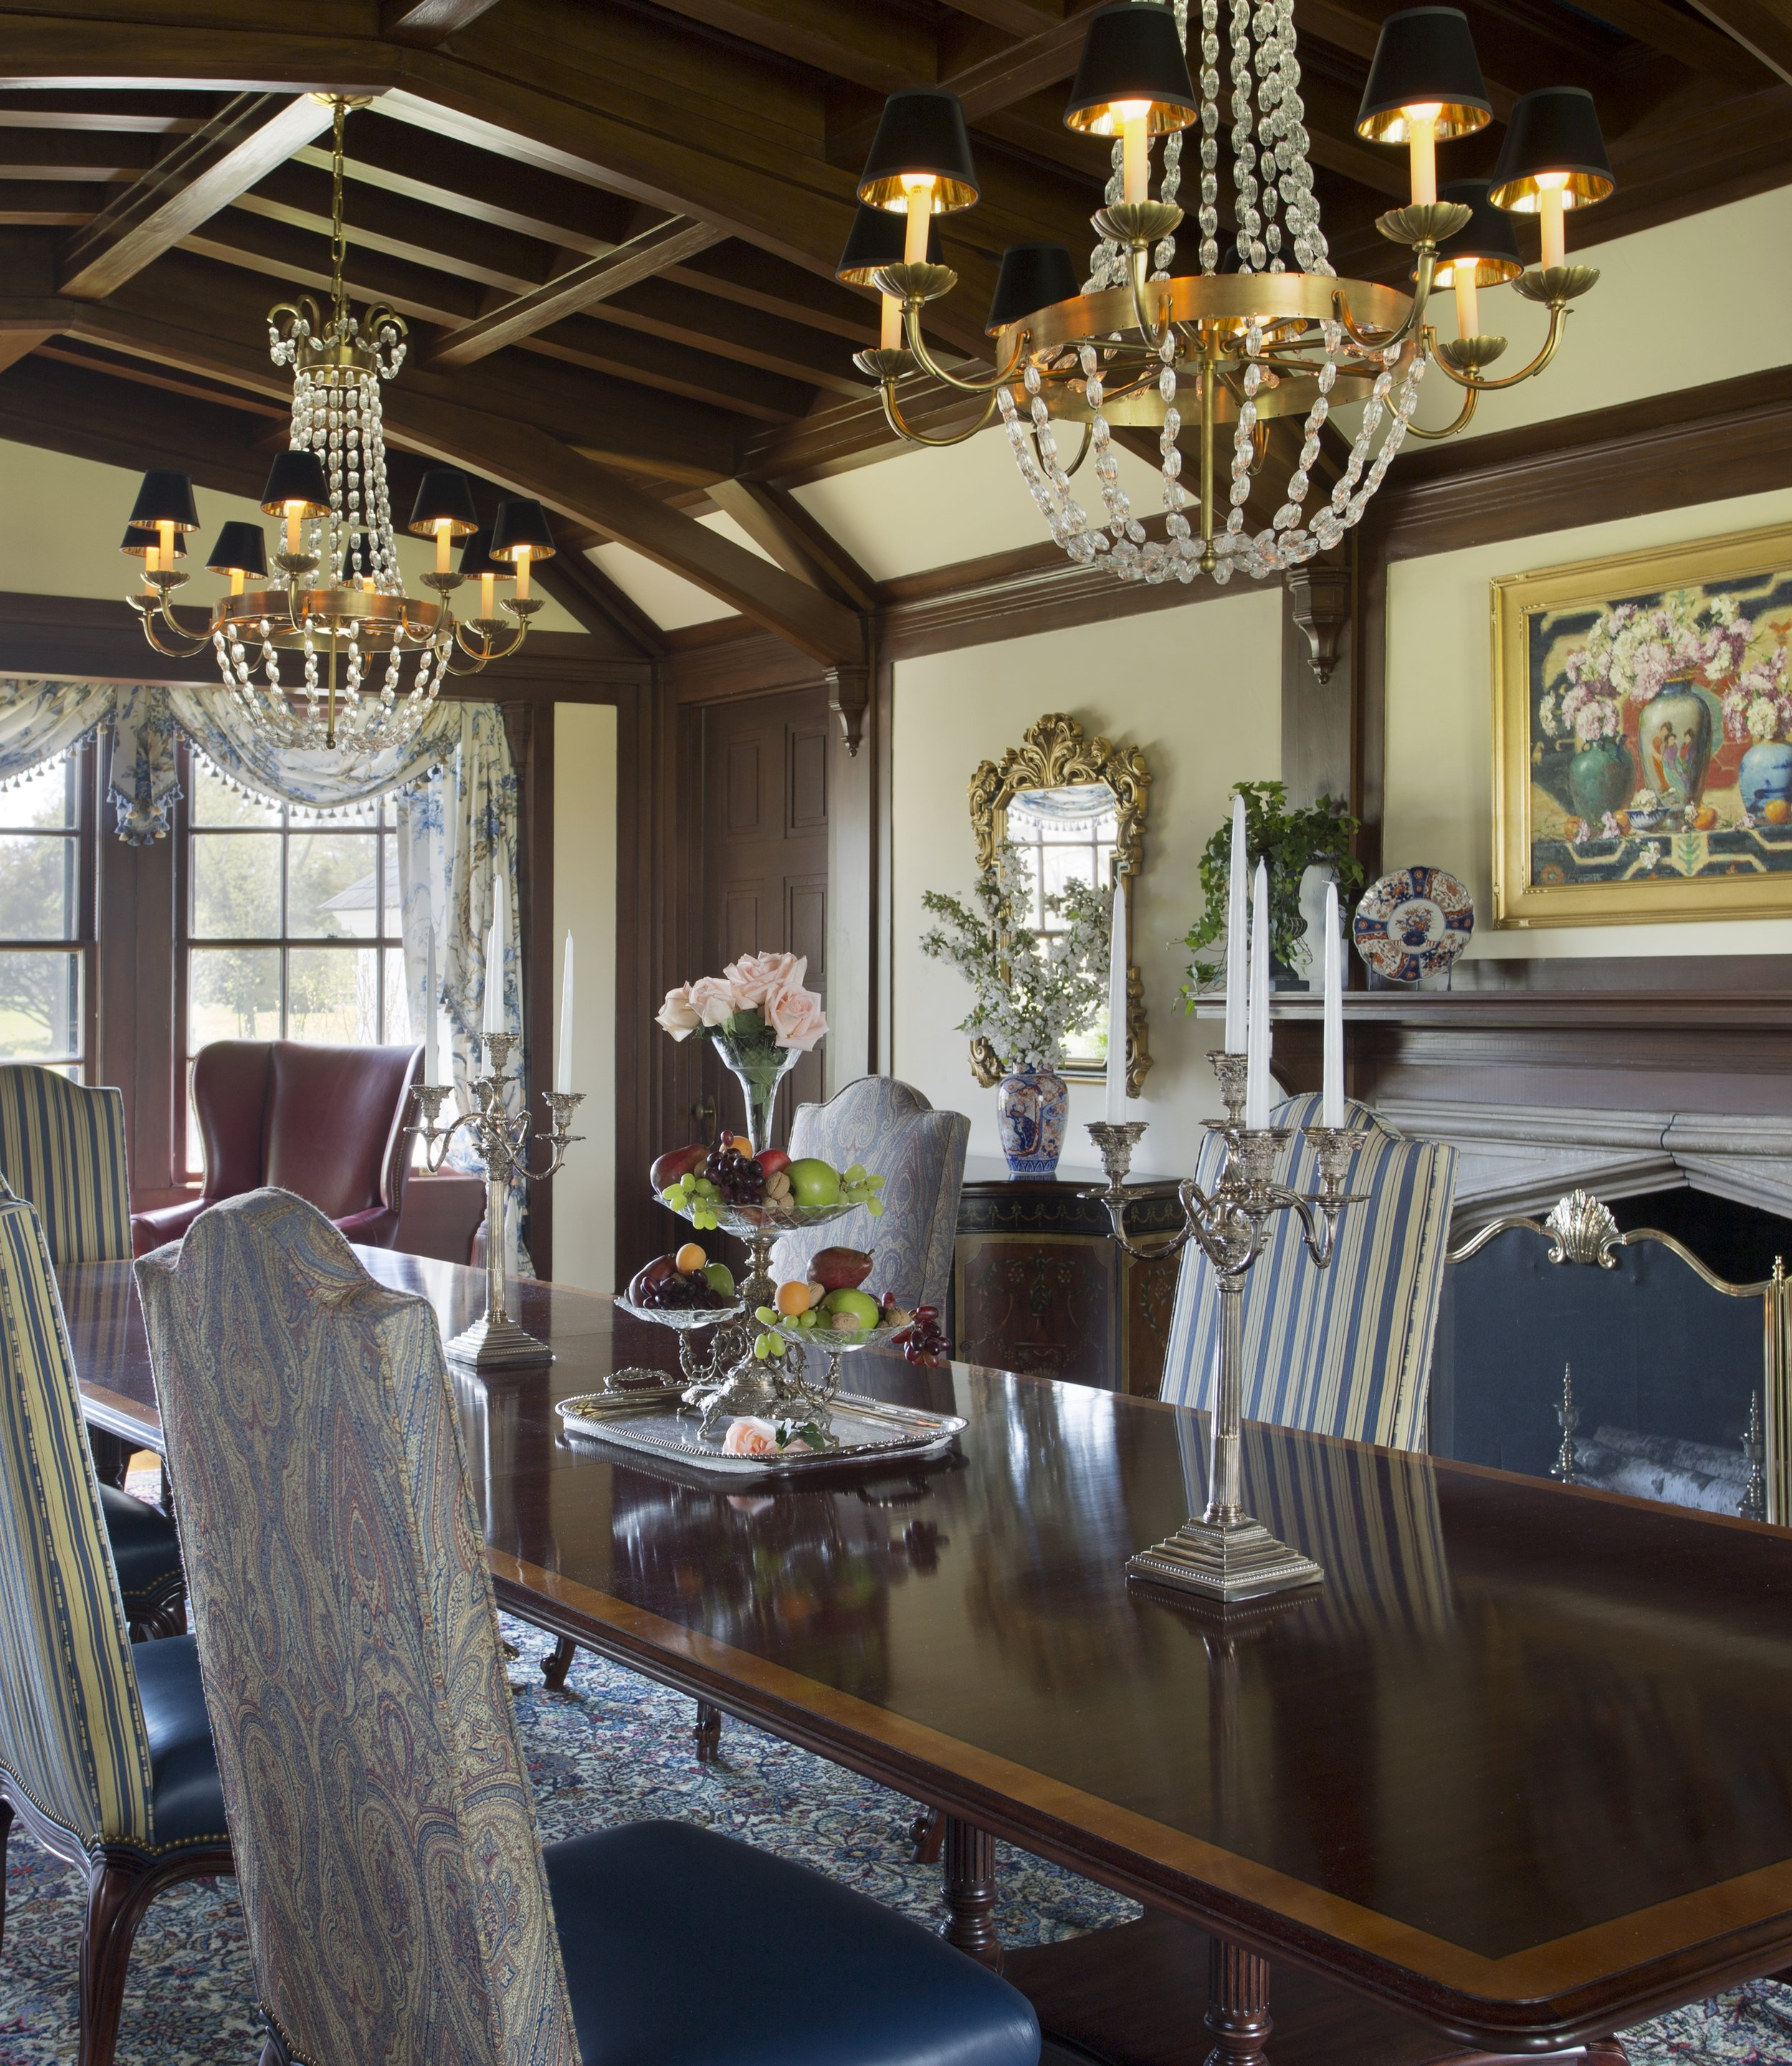 In this grandly scaled dining room, we used two Paris flea market style chandeliers over the table which extends from sixteen to twenty feet. The higher ceiling and overall scale of the room called for hanging them slightly higher.